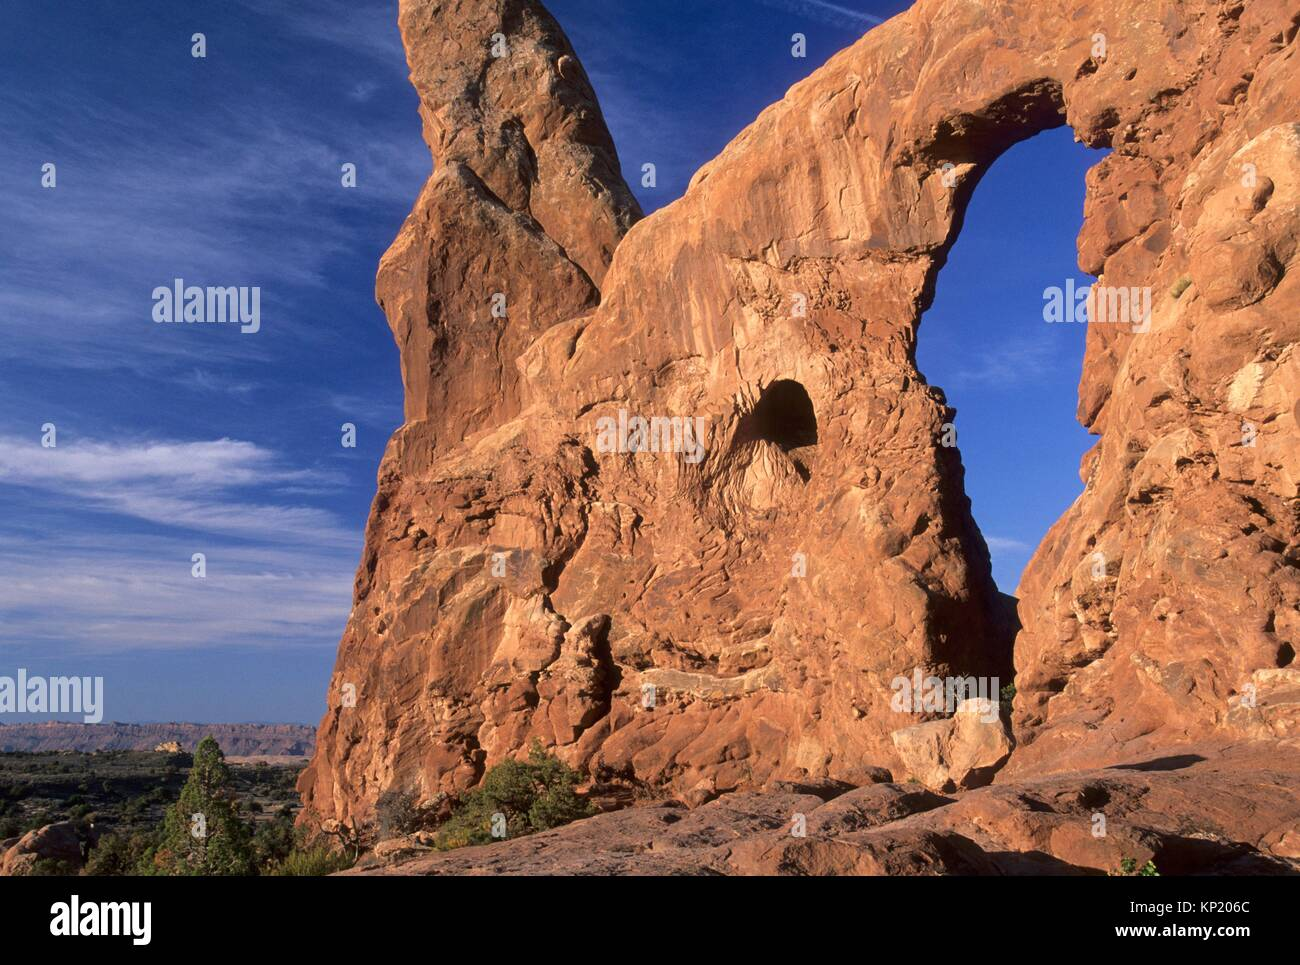 Turret Arch, Arches National Park, Utah. - Stock Image